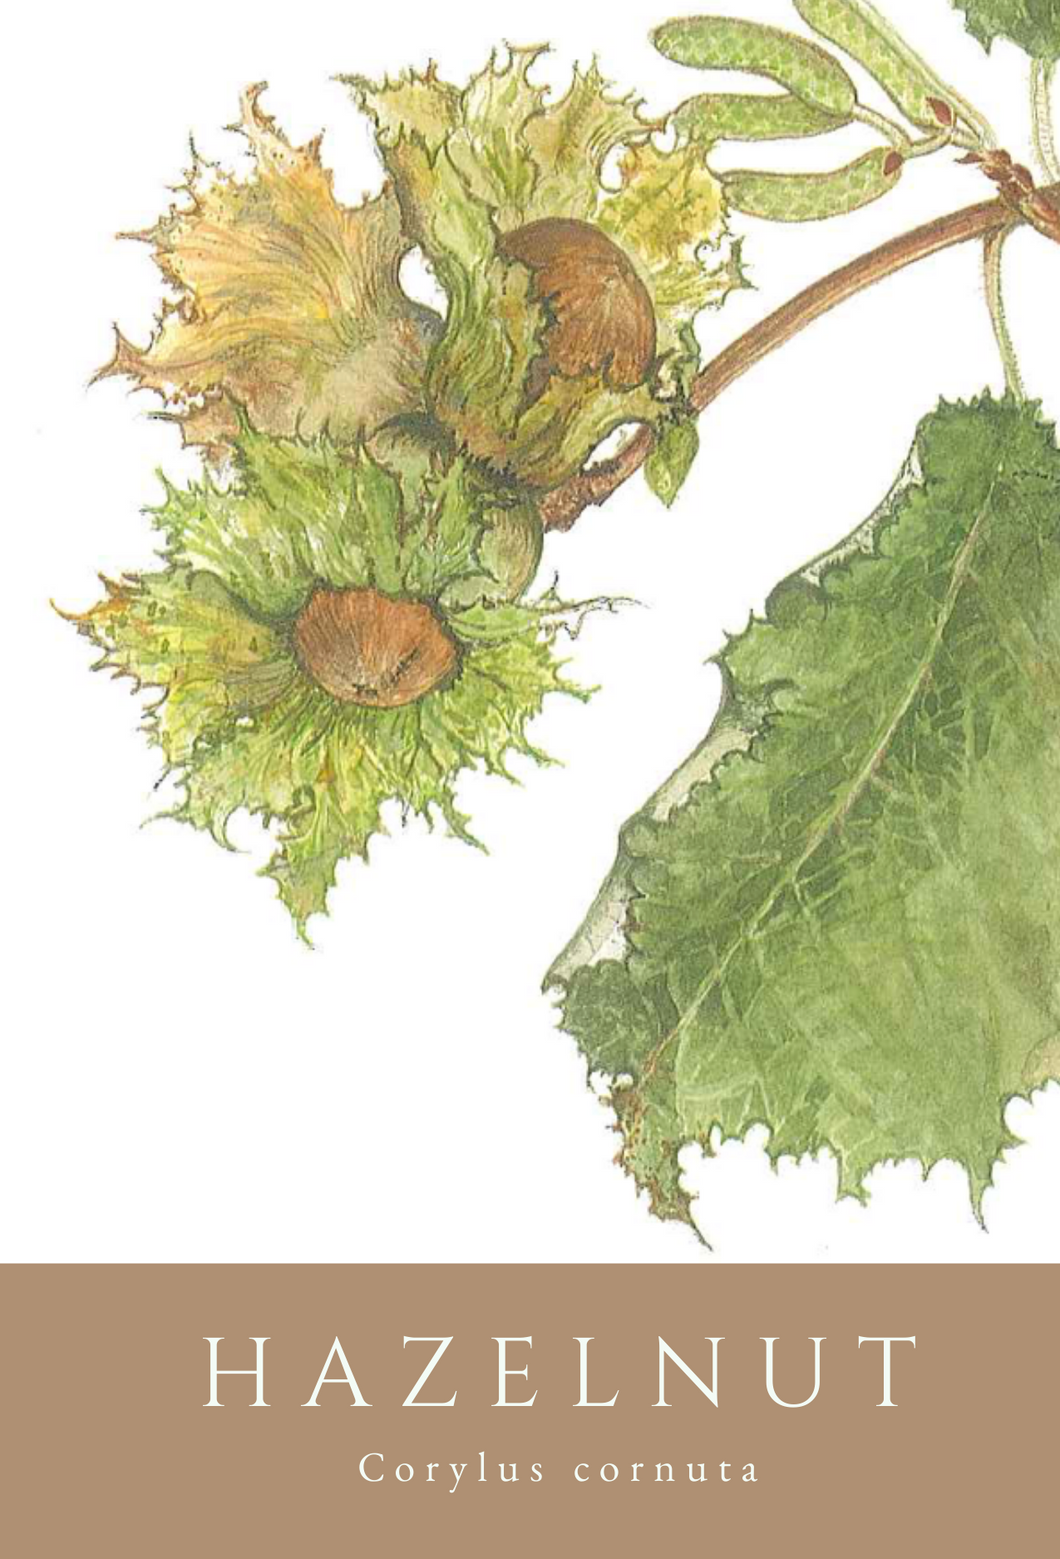 Hazelnut greeting card